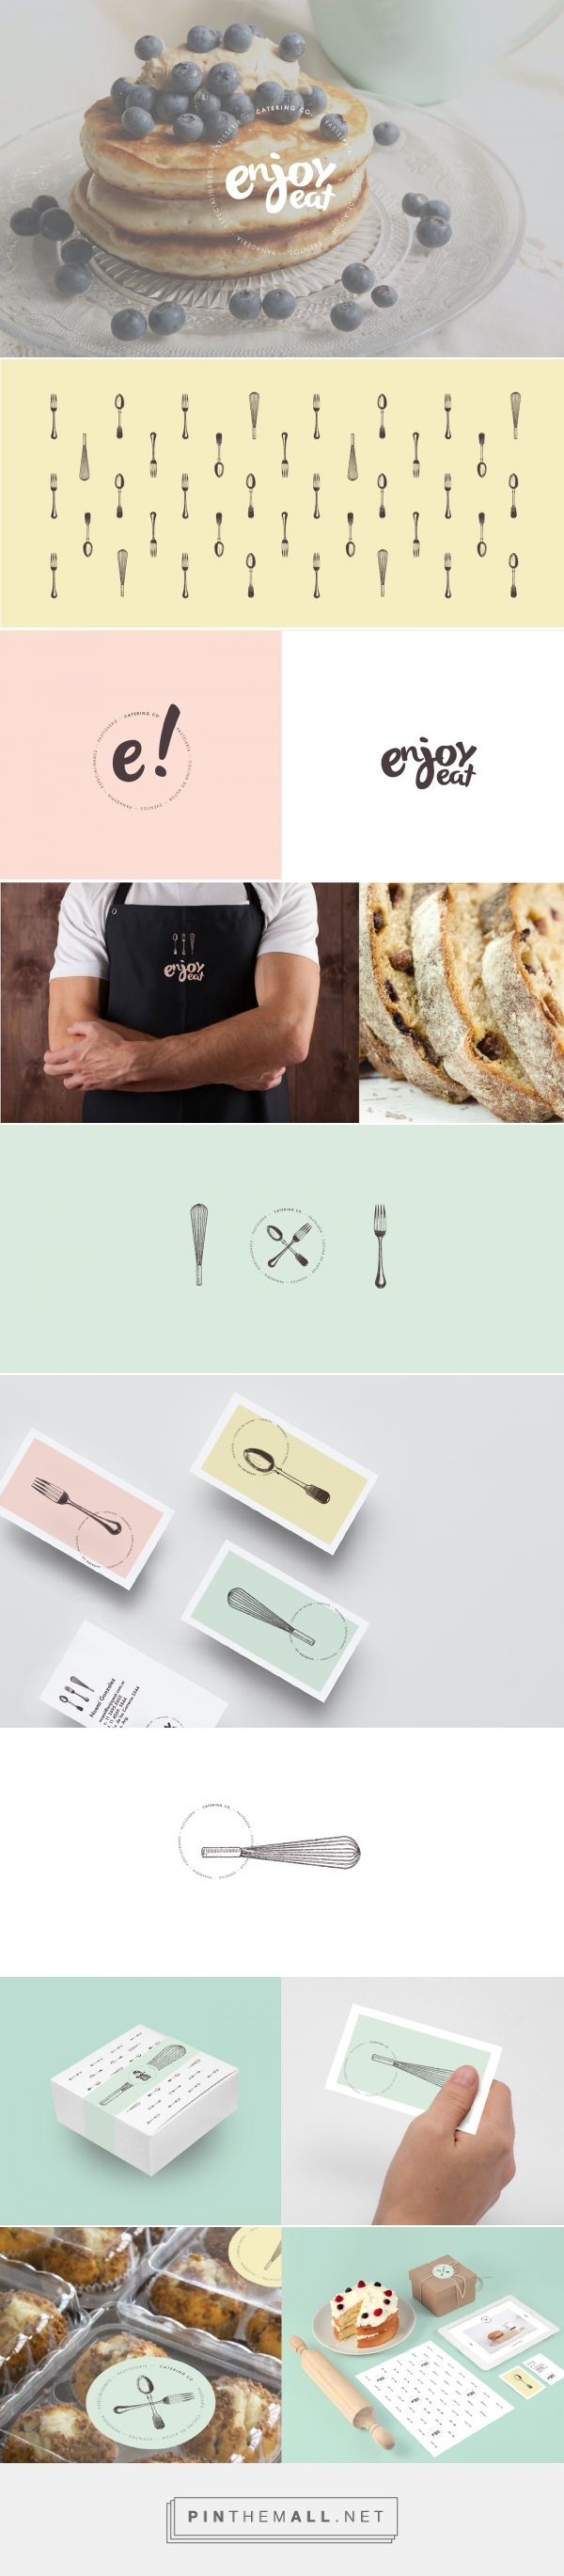 EnjoyEat Catering co. by Bando